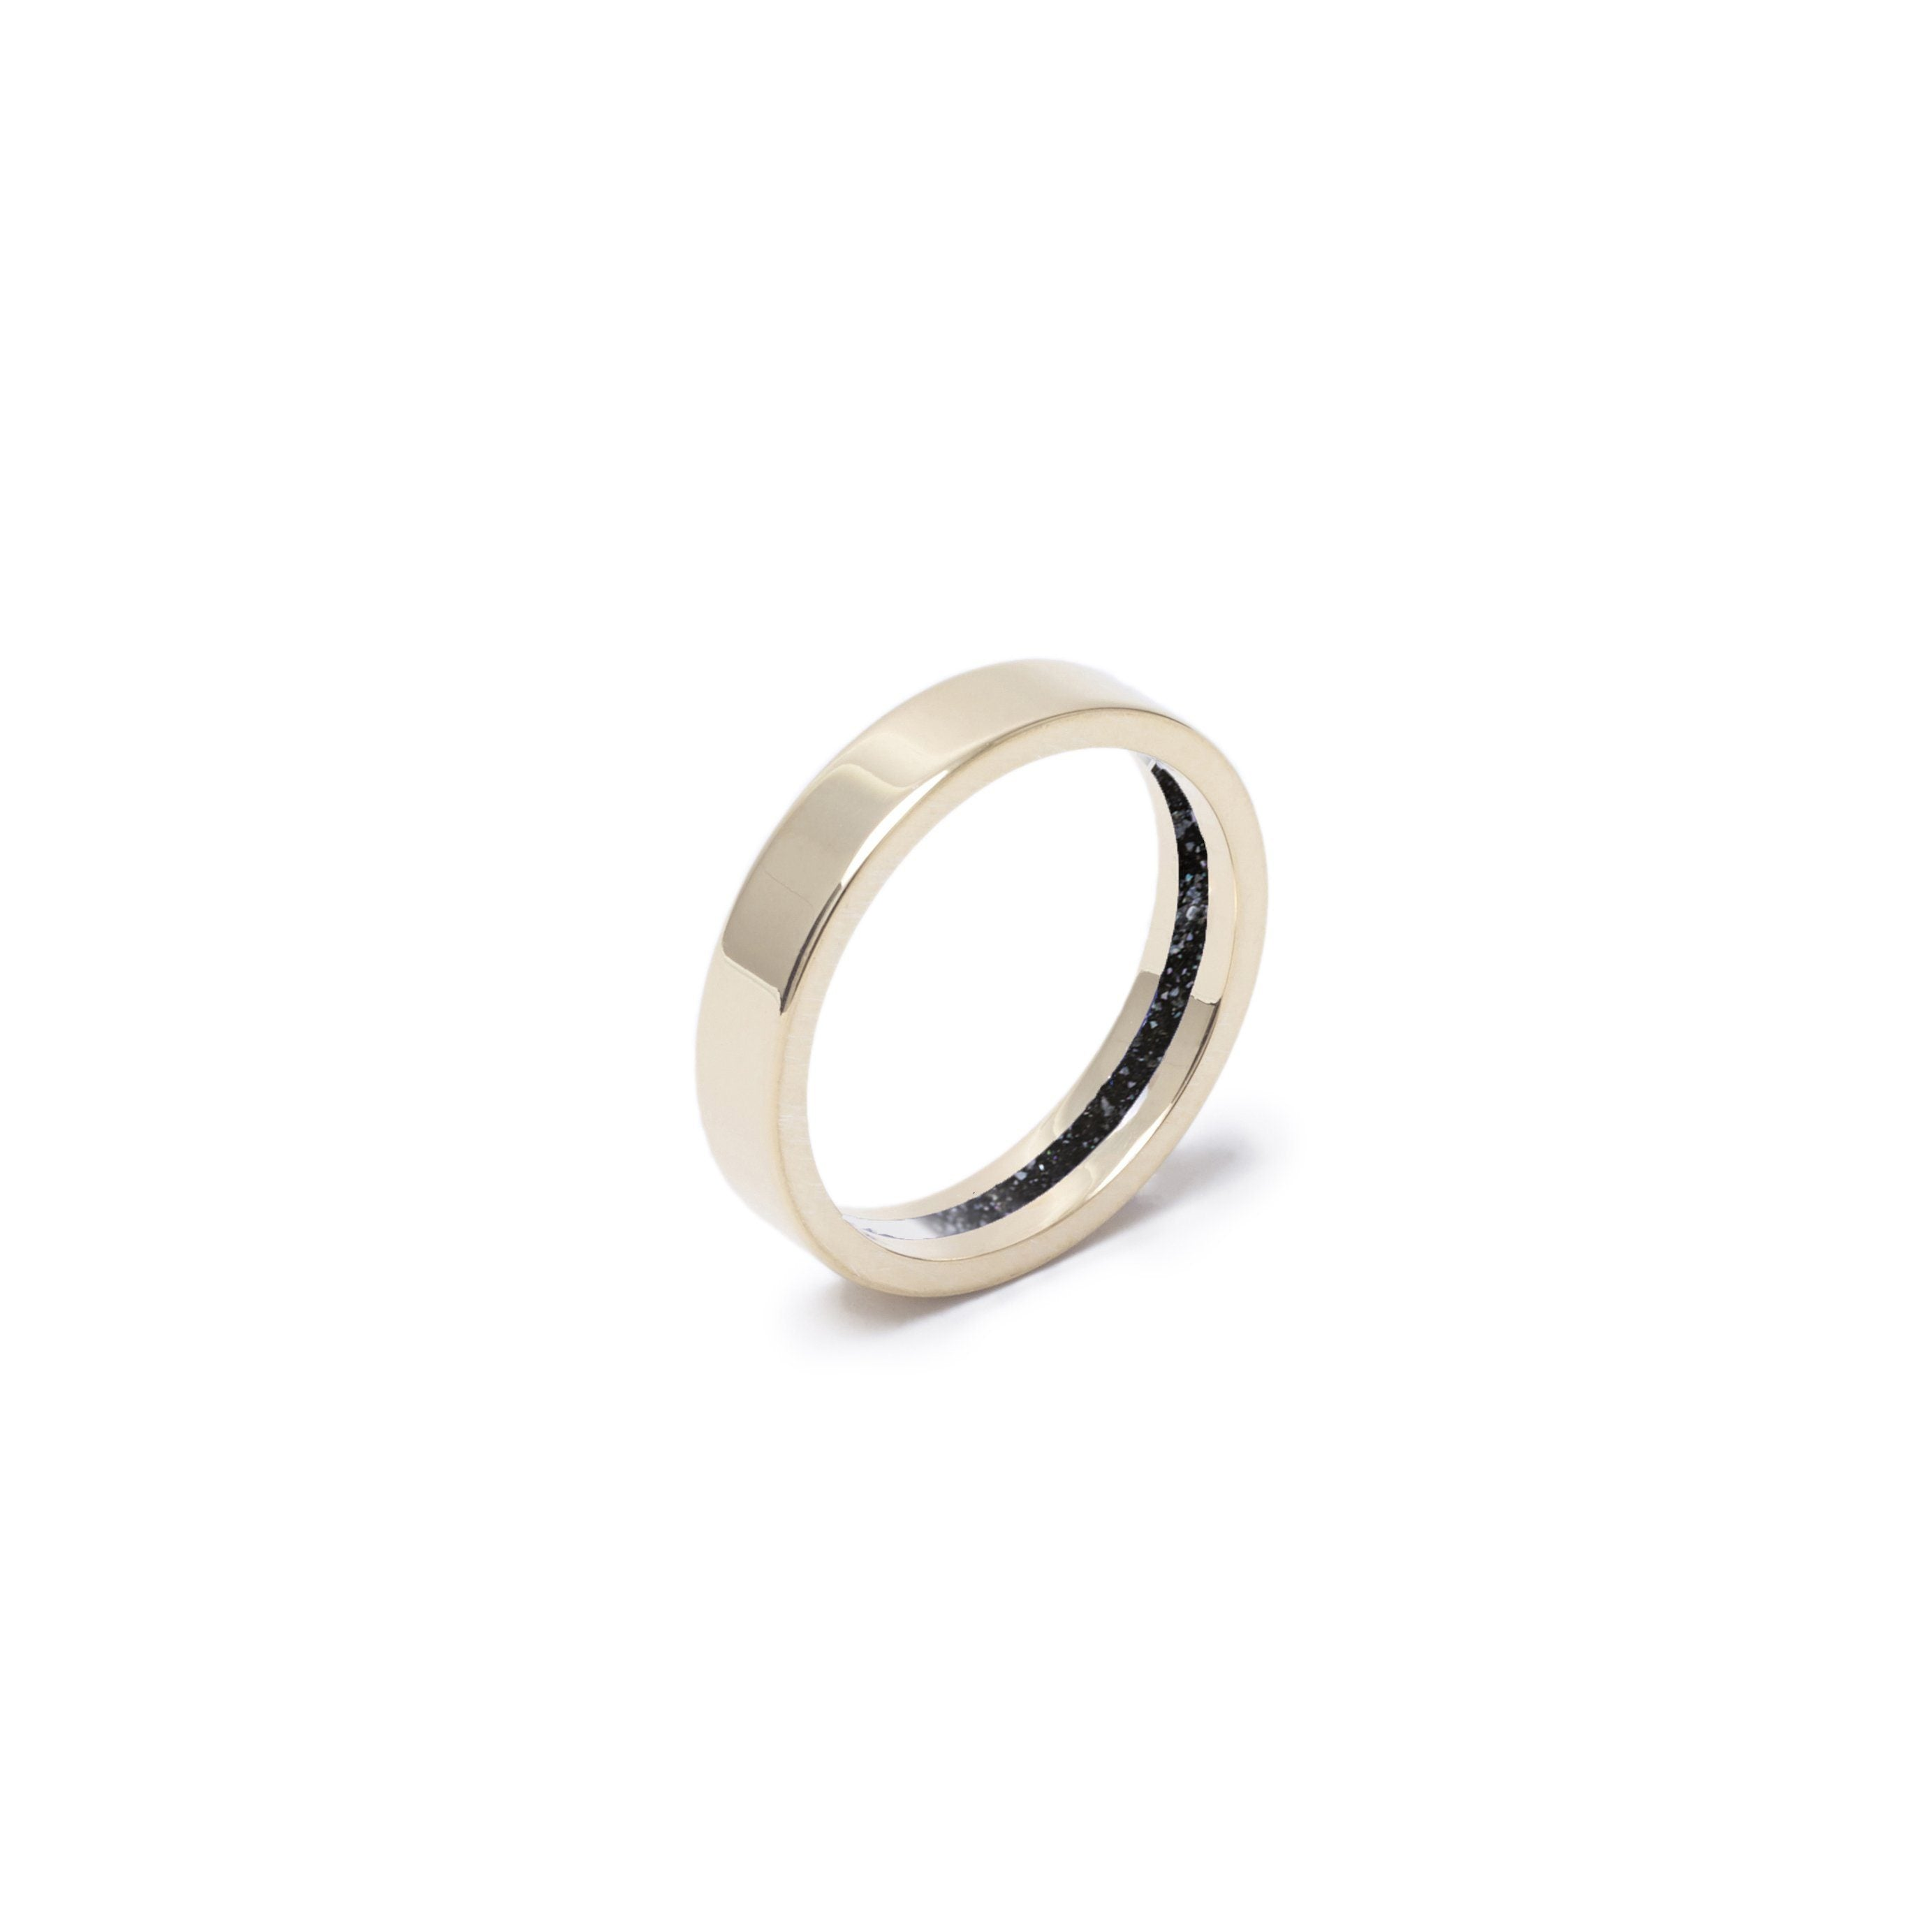 Everence Ring, 10k Yellow Gold everence.life 4mm Charcoal